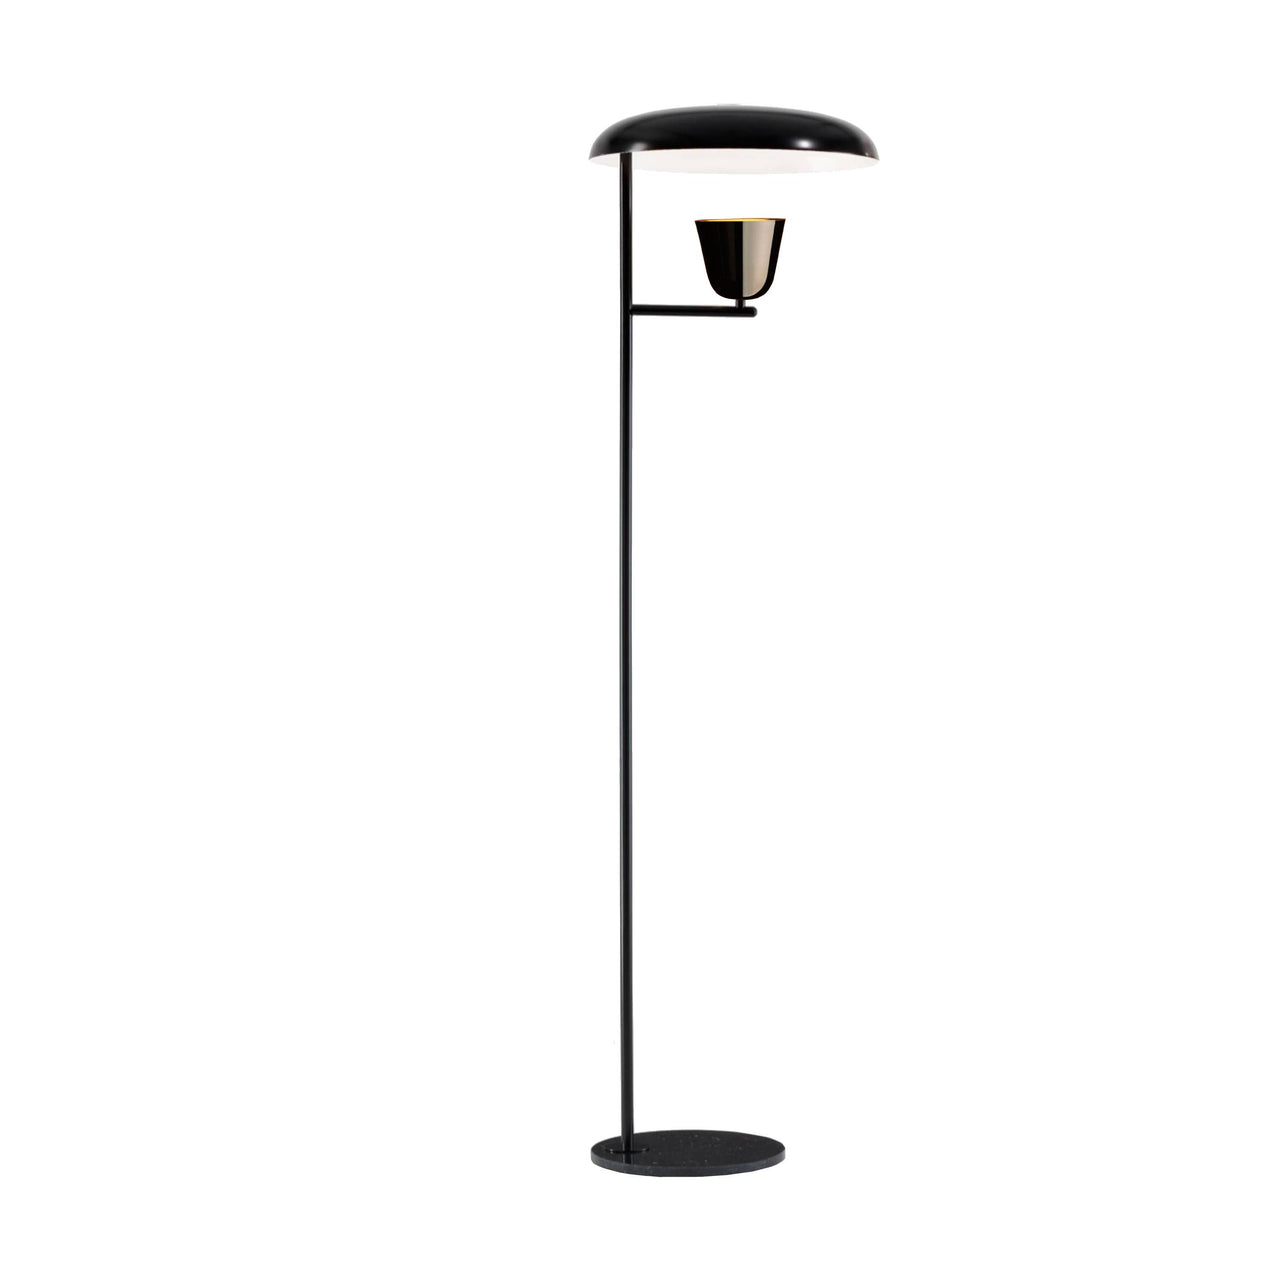 Lightolight Floor Lamp: Black + Black Chrome